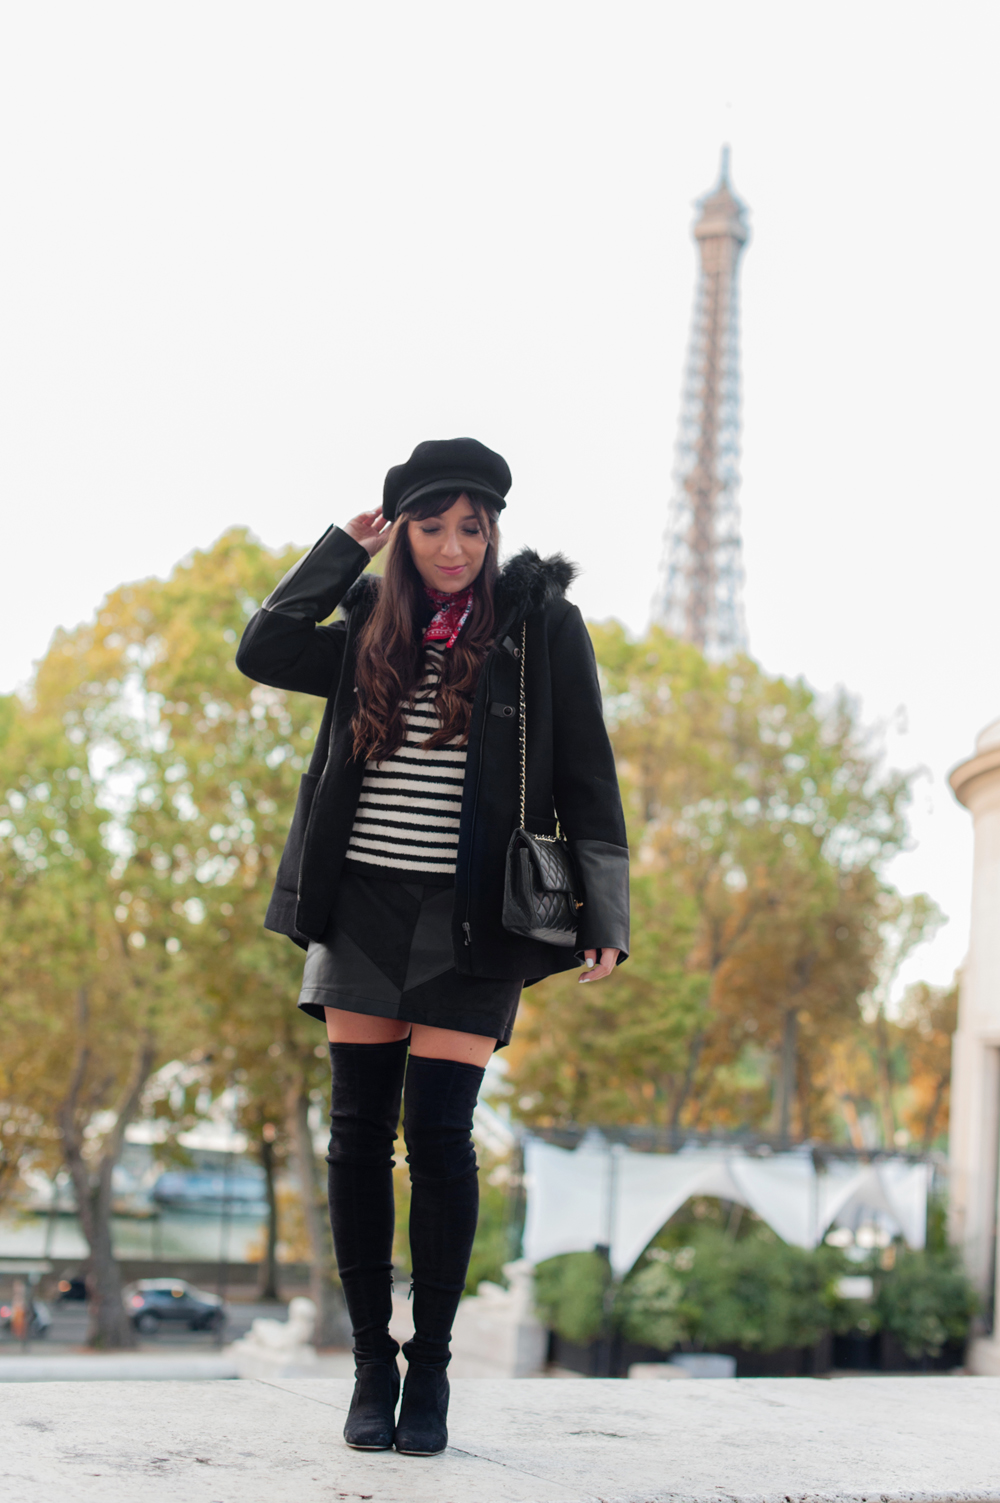 marieluvpink-blog-mode-paris-elora-10